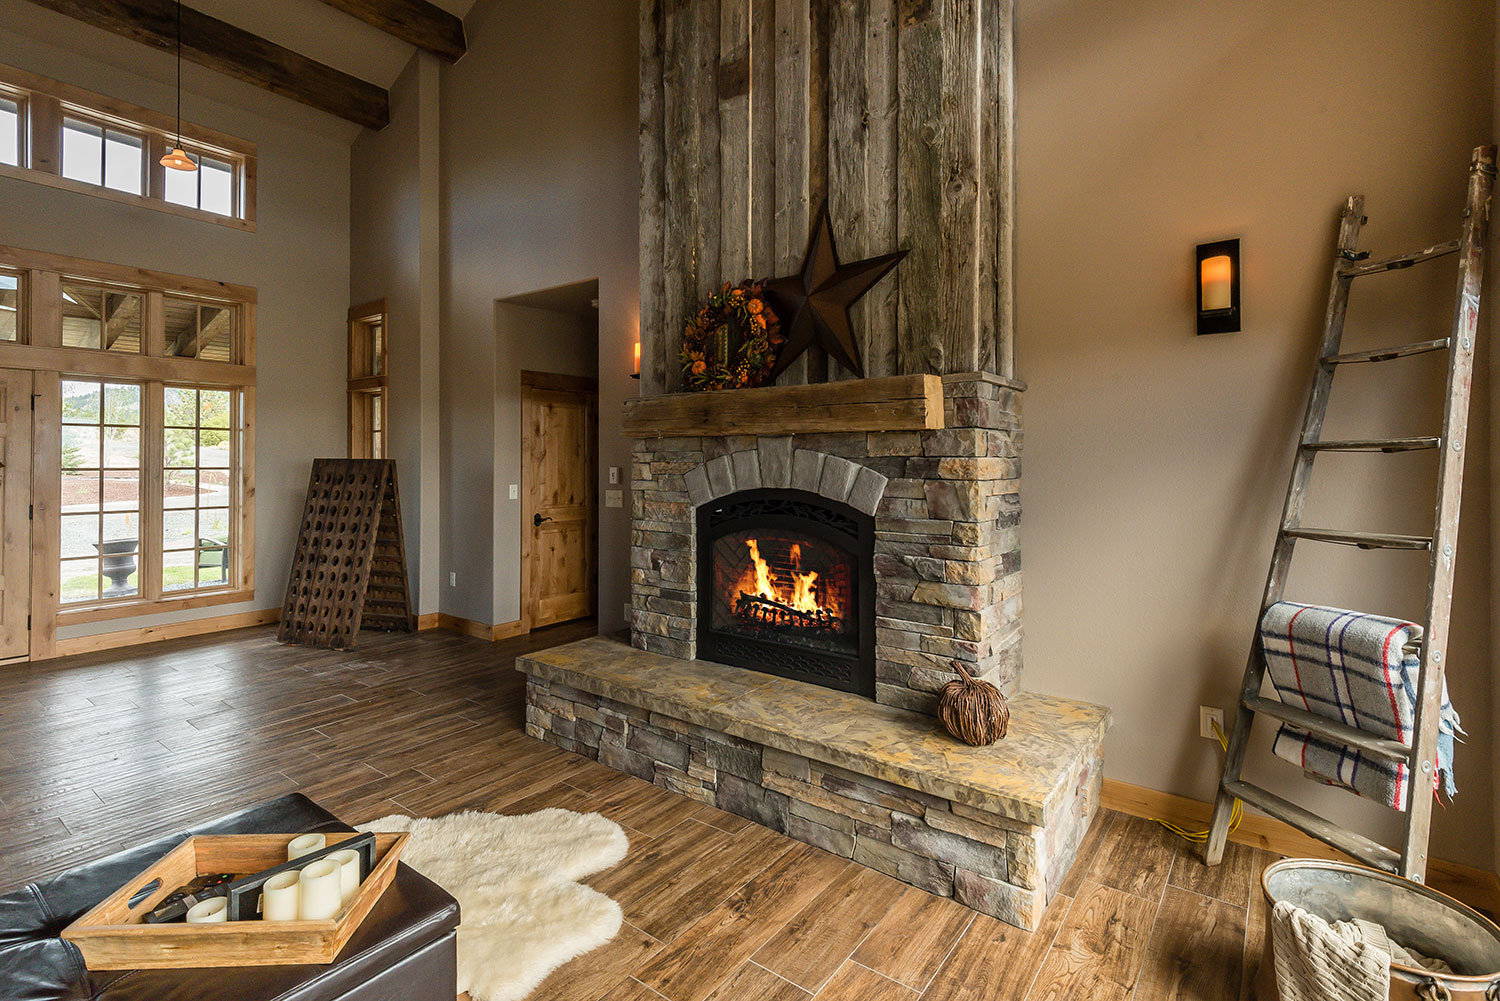 Rock-trimmed fireplace with rustic decor above and around it